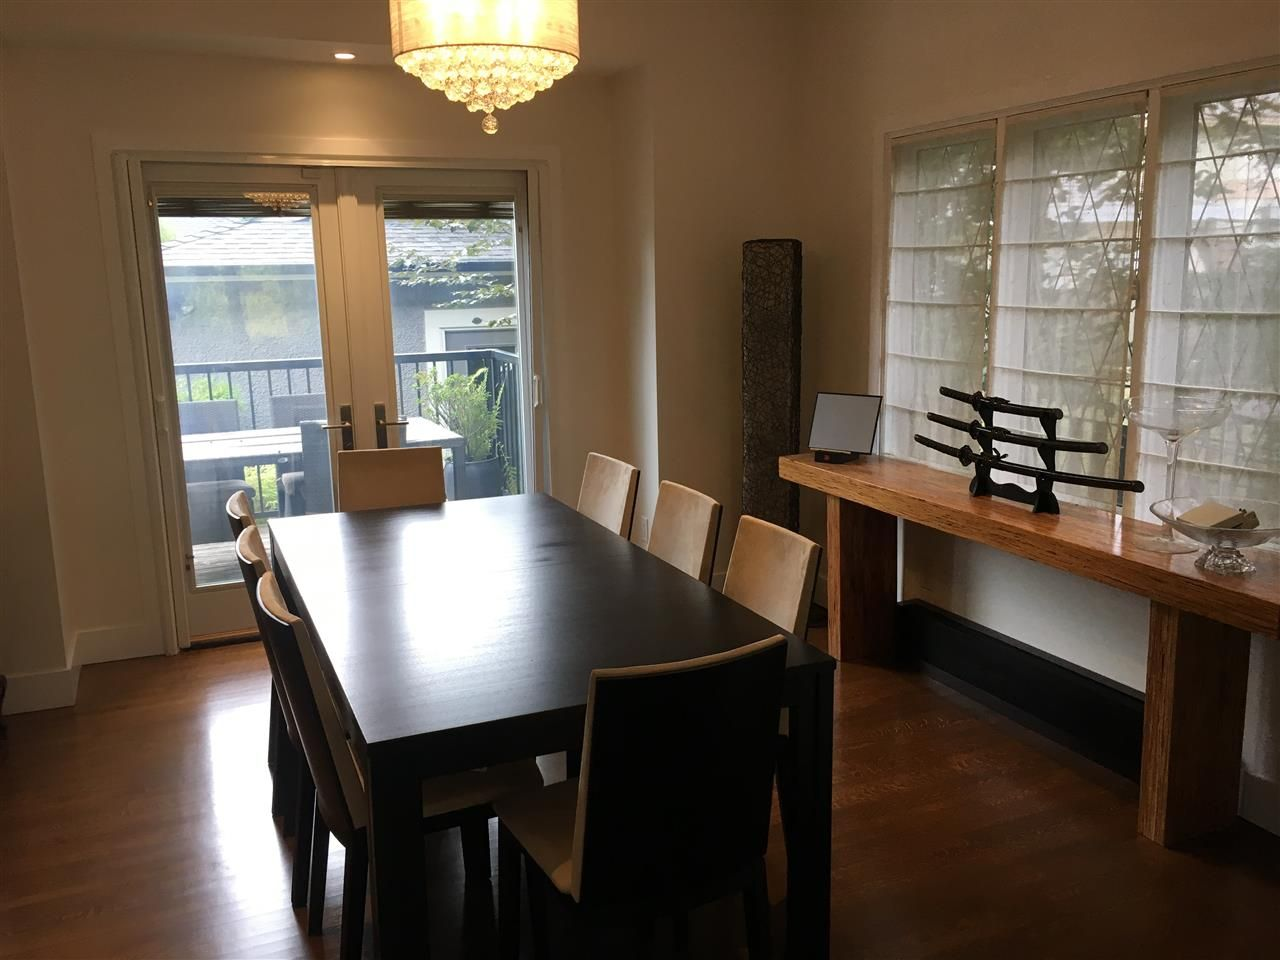 Photo 4: Photos: 1268 NANTON Avenue in Vancouver: Shaughnessy House for sale (Vancouver West)  : MLS®# R2209391